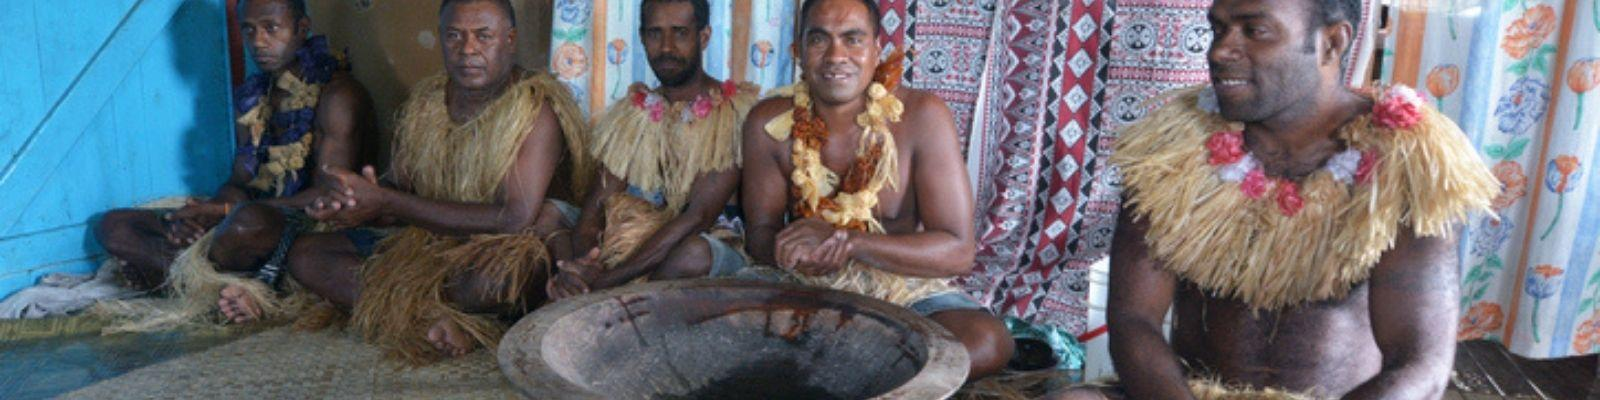 Fijian men sitting on straw mat with bowl of kava in front